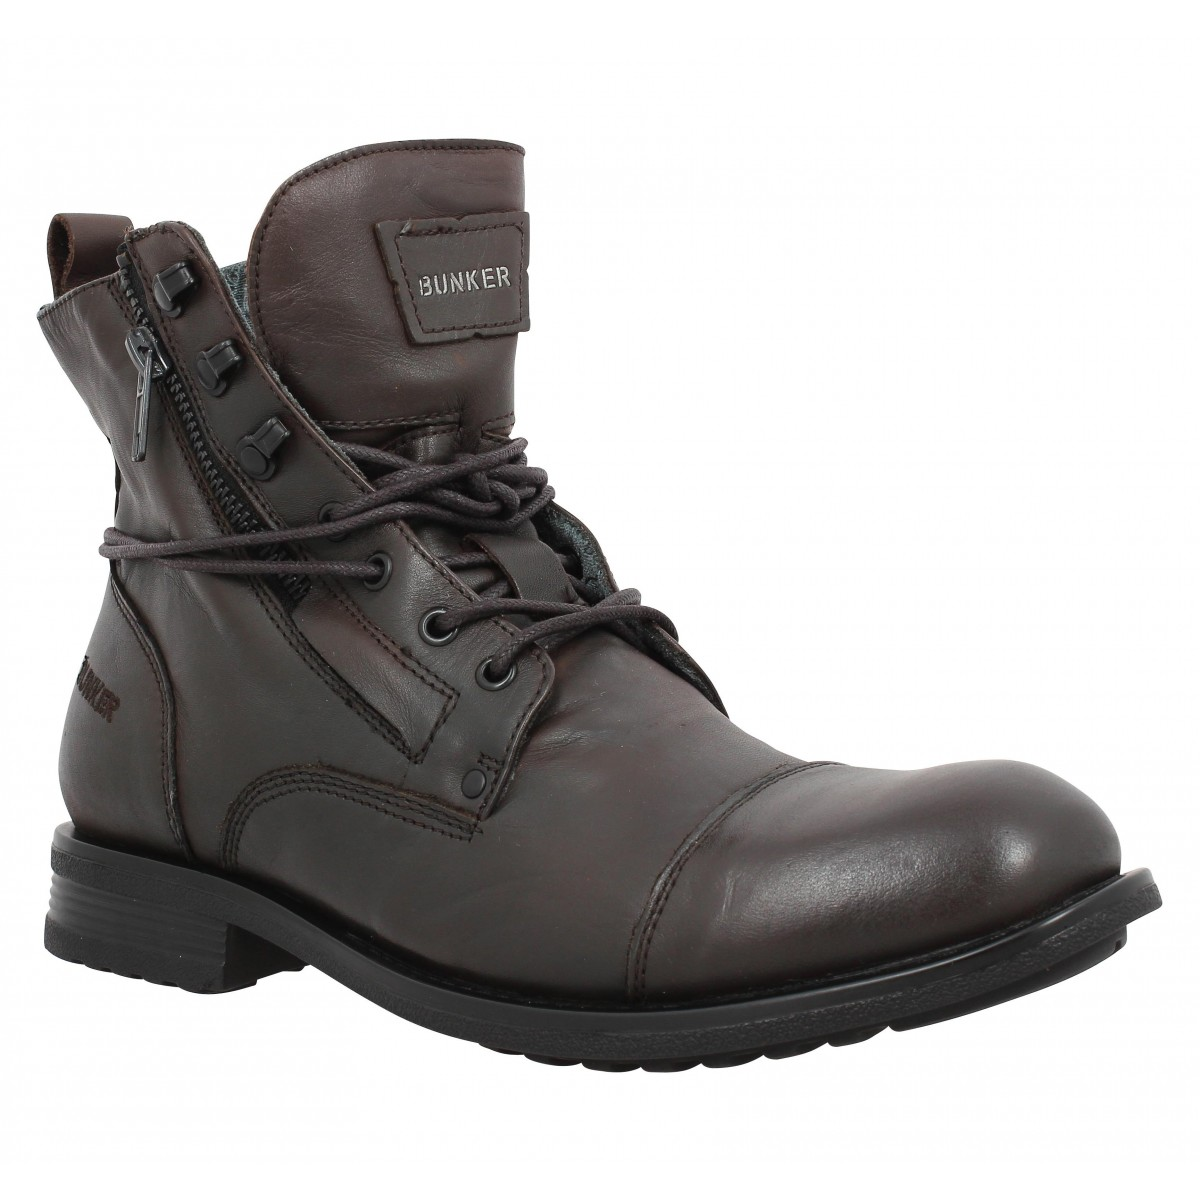 Bottines BUNKER Mido cuir Homme Marron